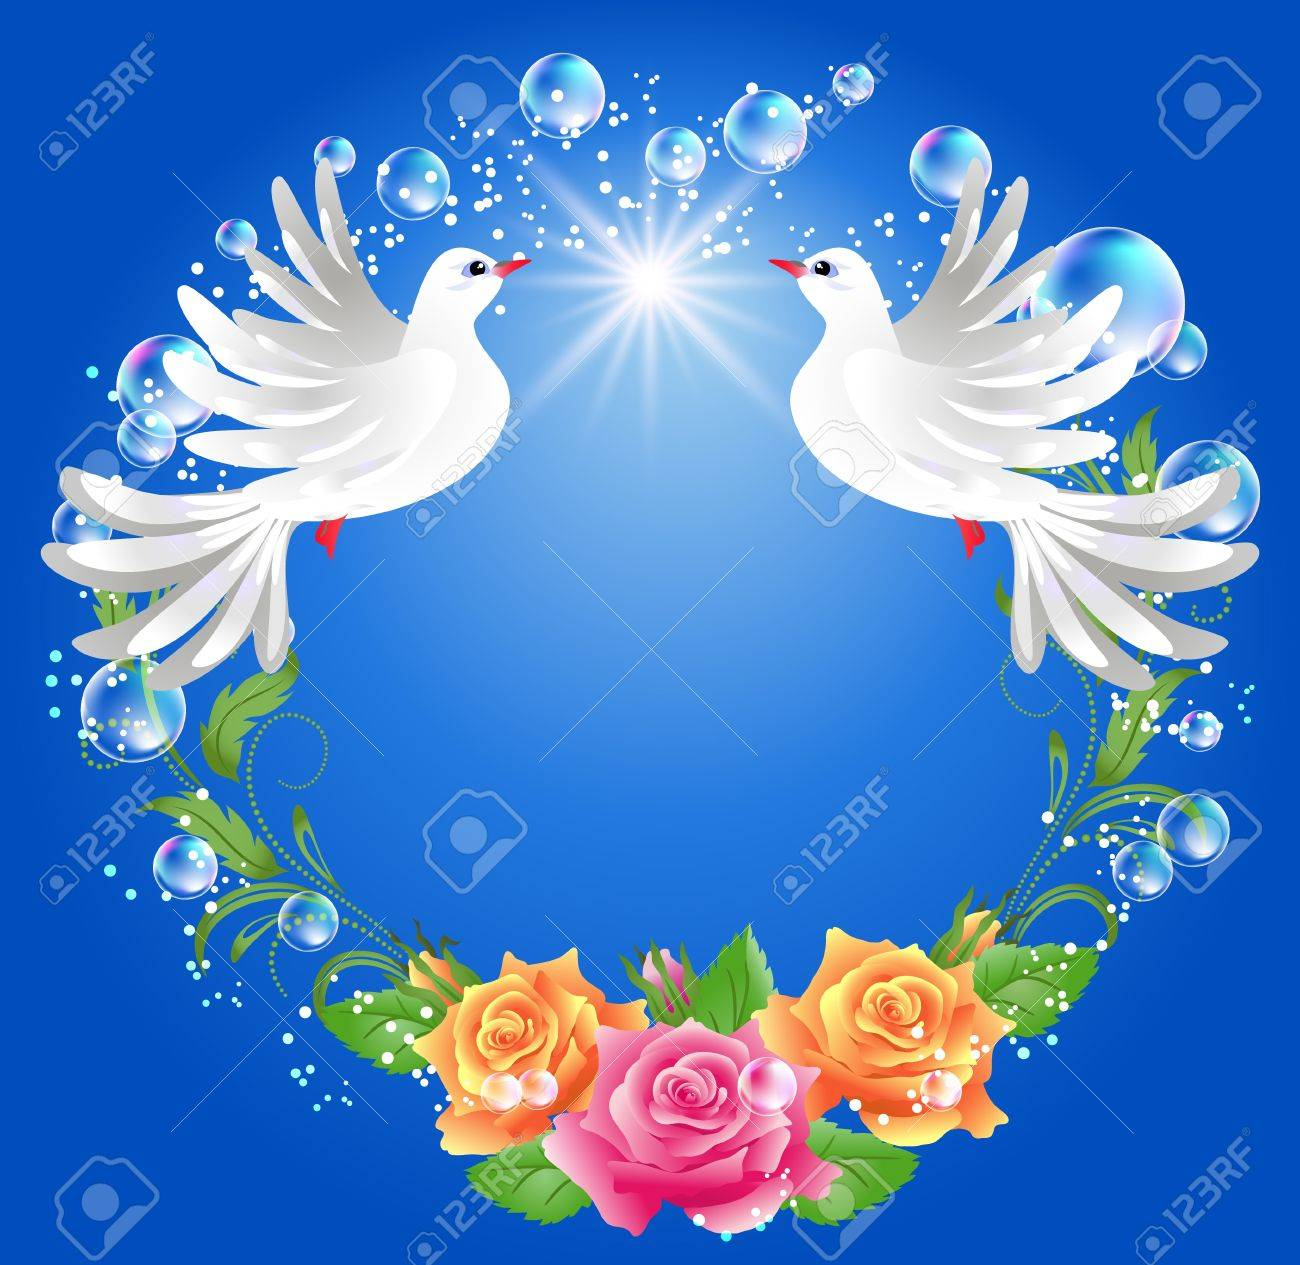 Two doves on blue background with roses - 14676309